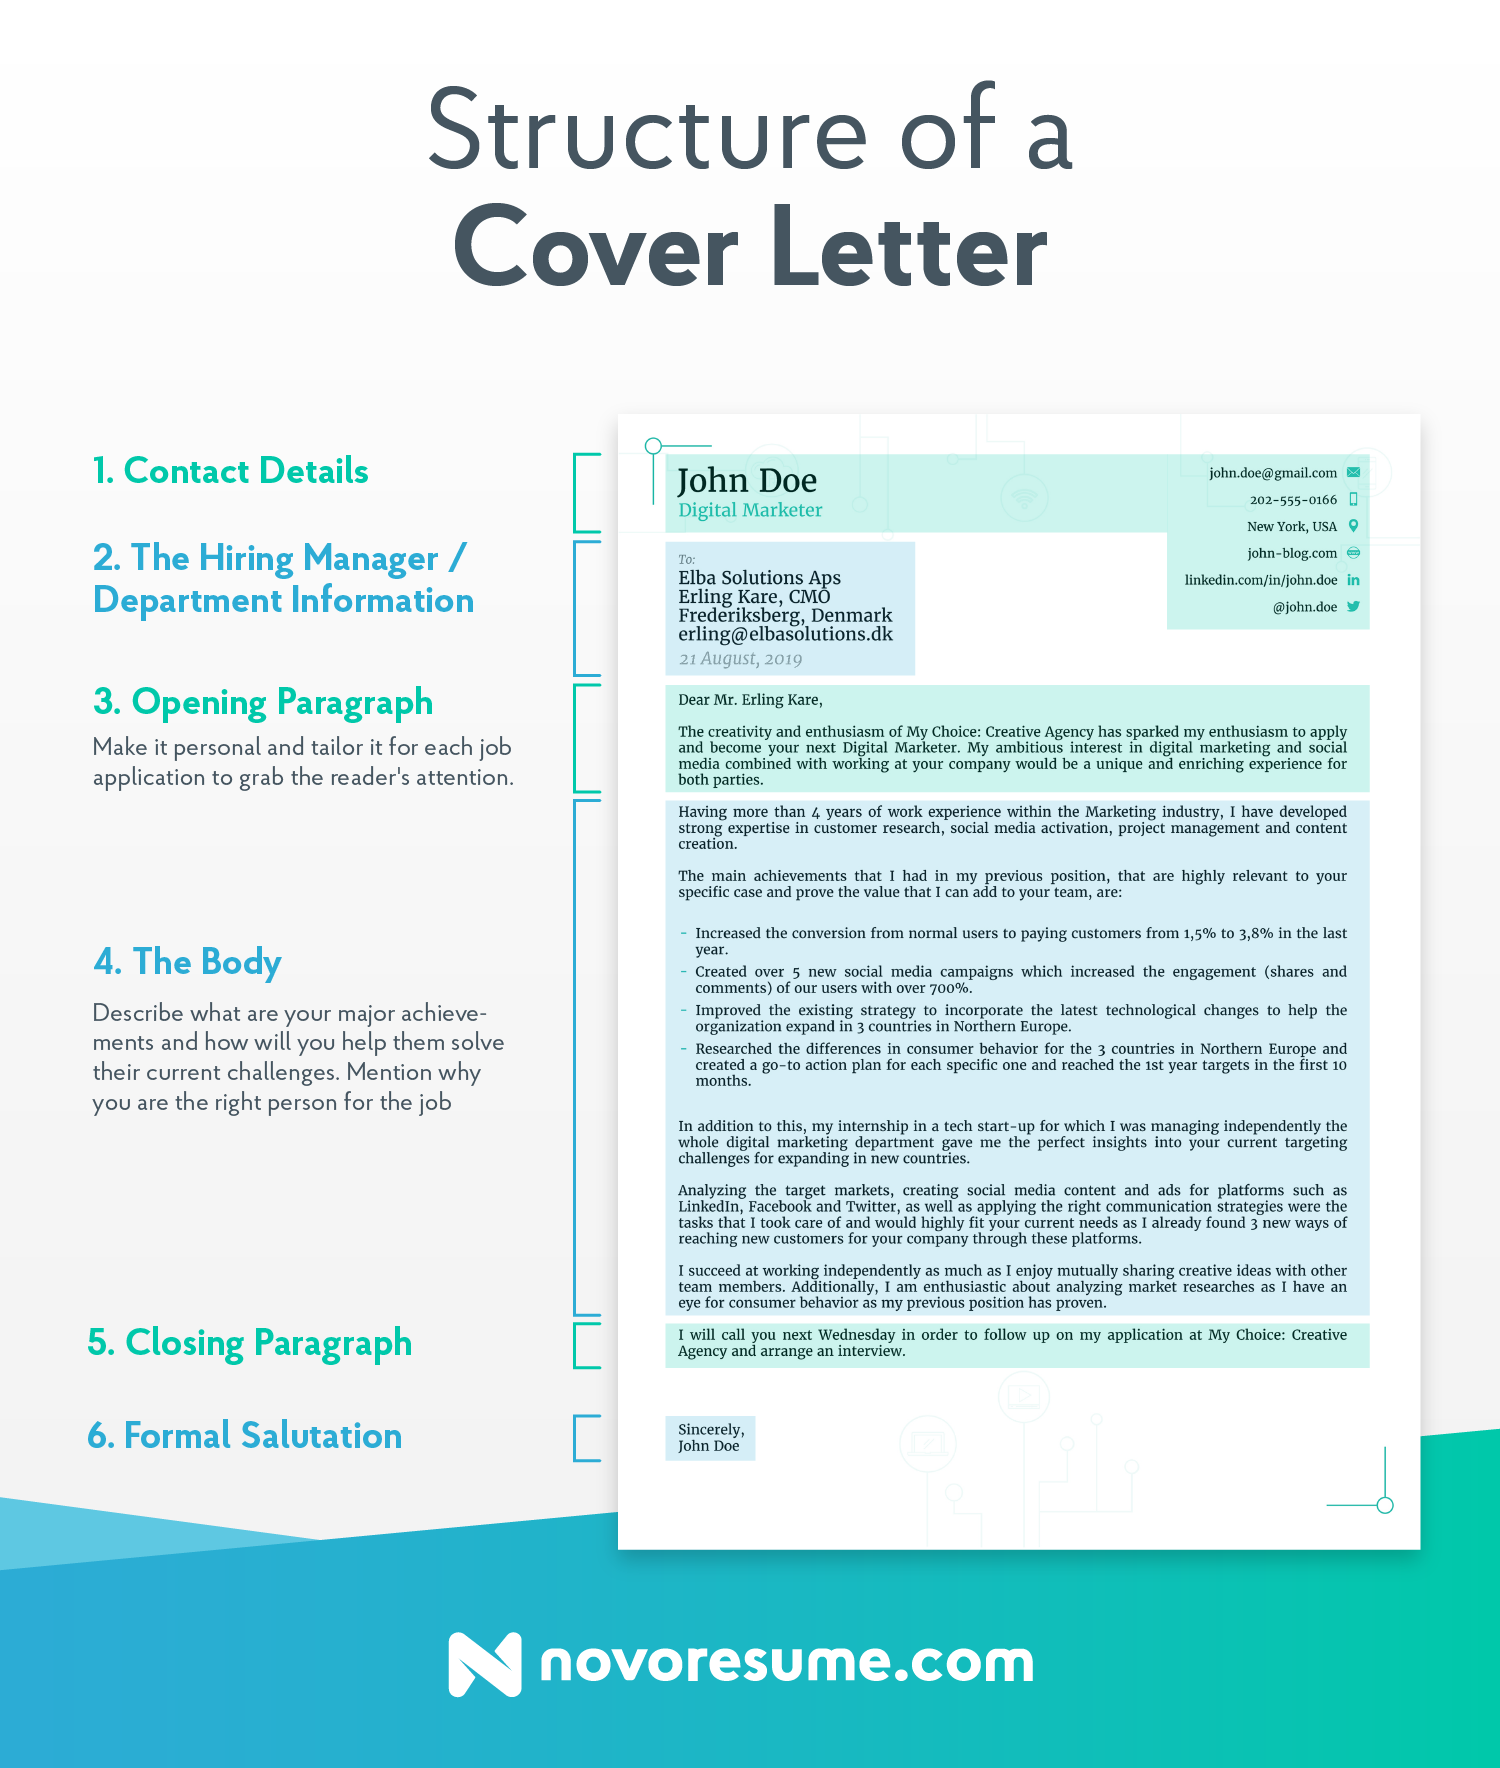 How To Write A Cover Letter & Get The Job [5+ Real-Life